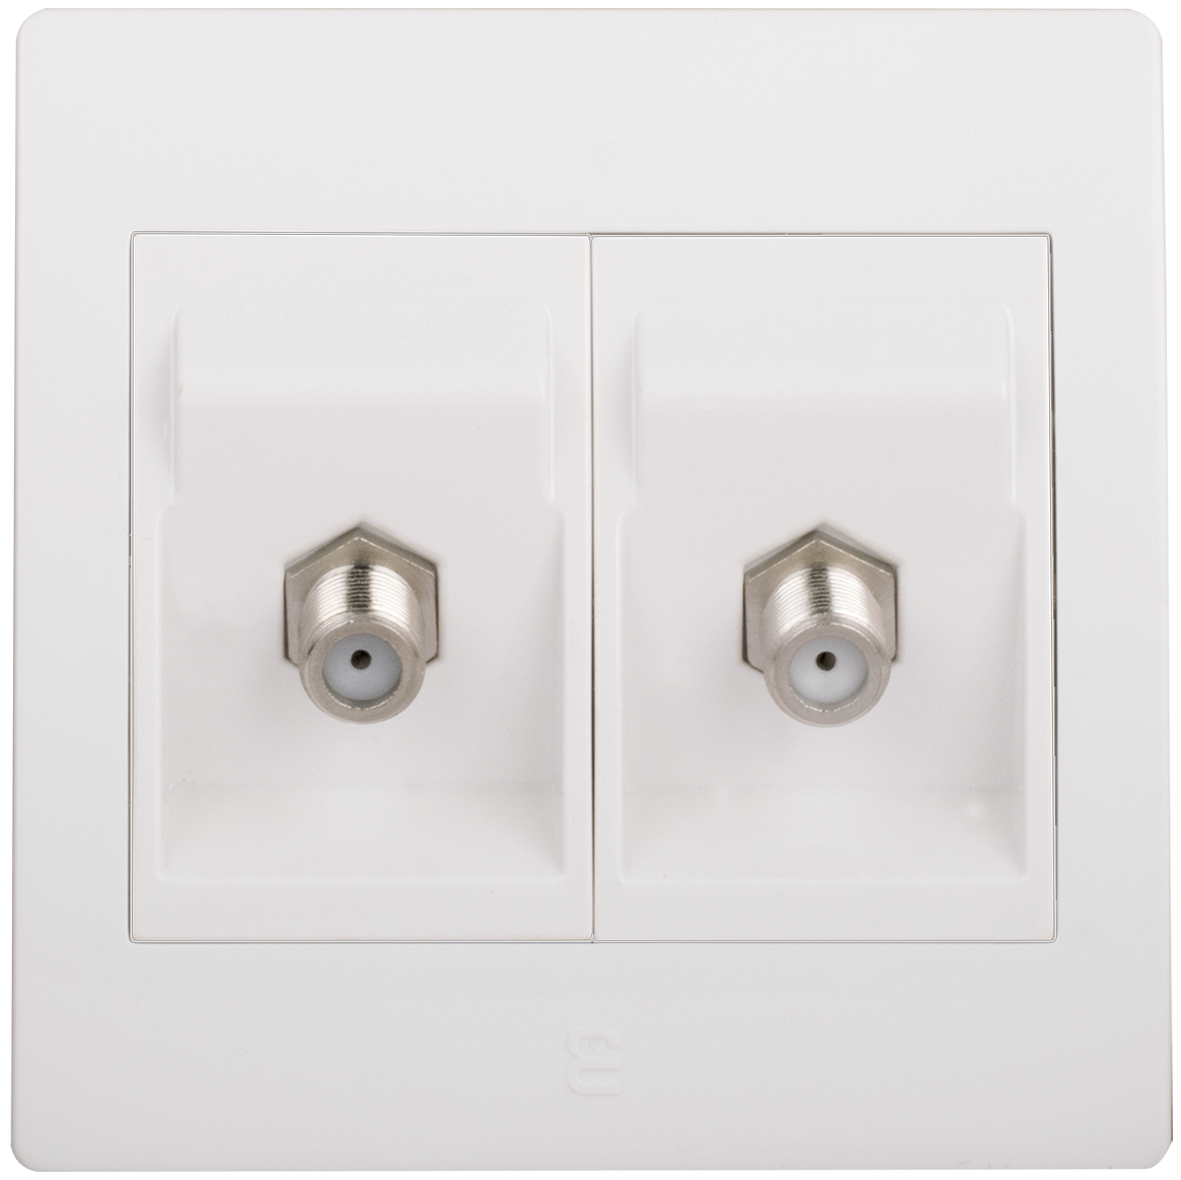 Double satellite socket